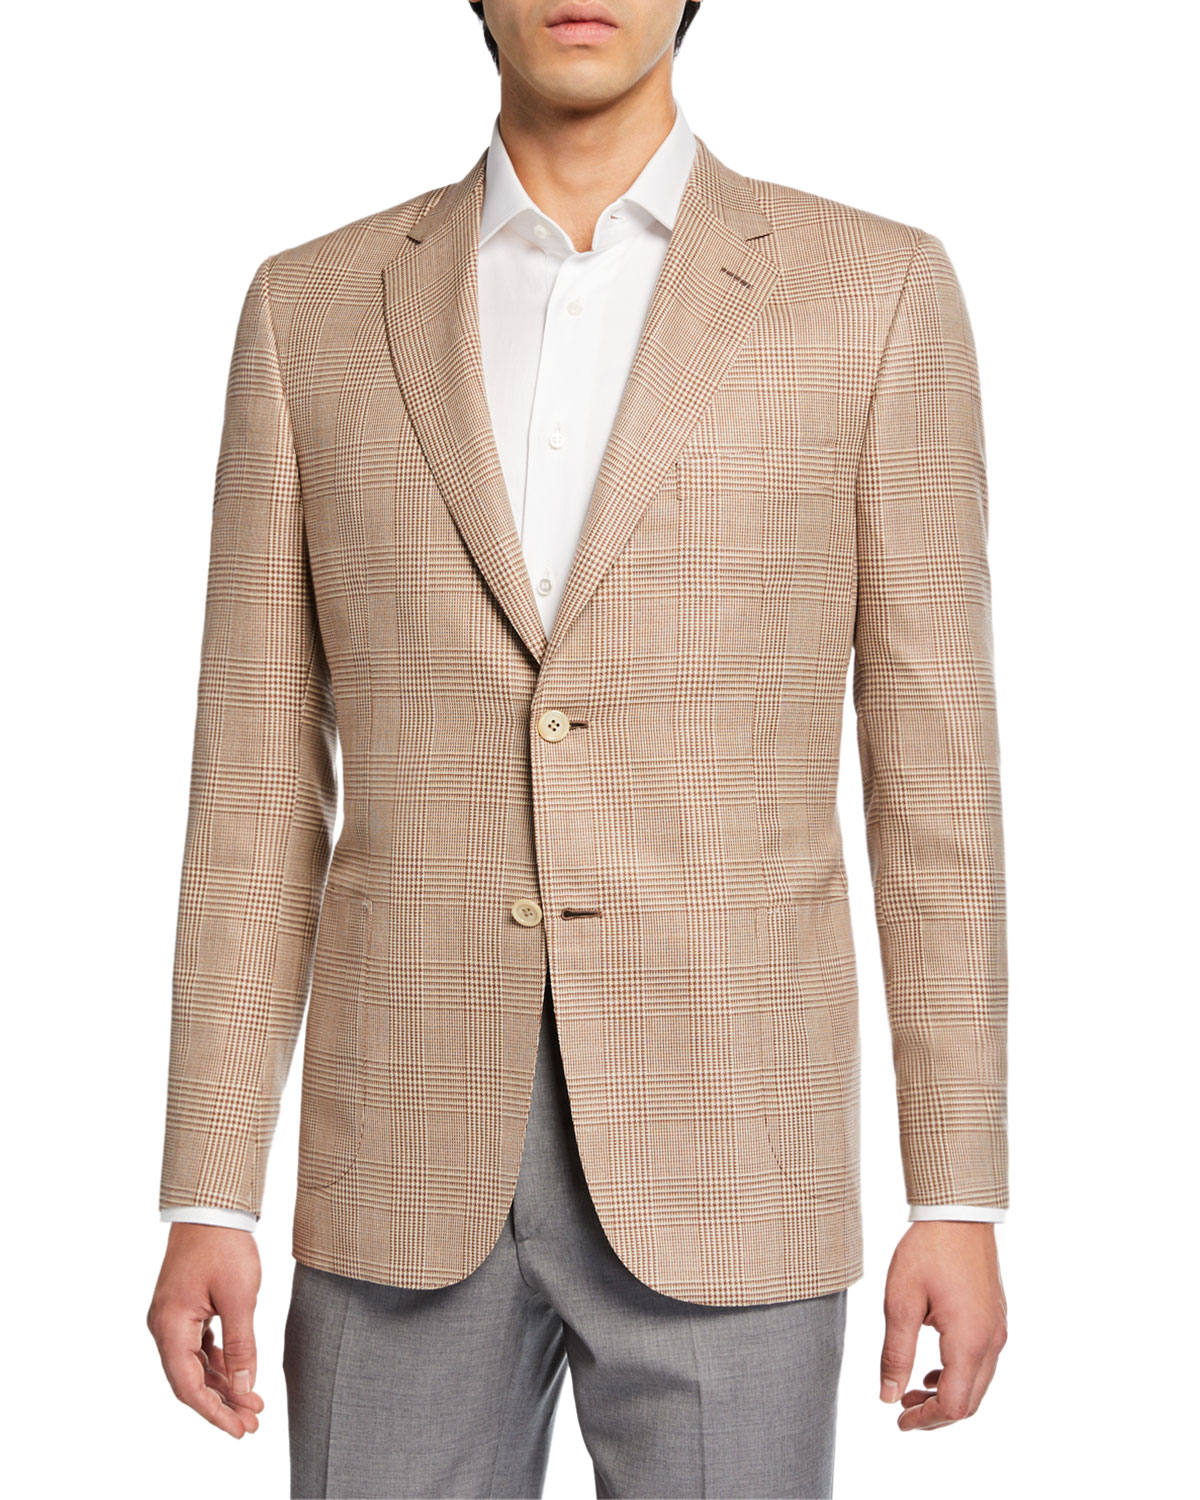 Brioni Jackets MEN'S PLAID TWO-BUTTON JACKET